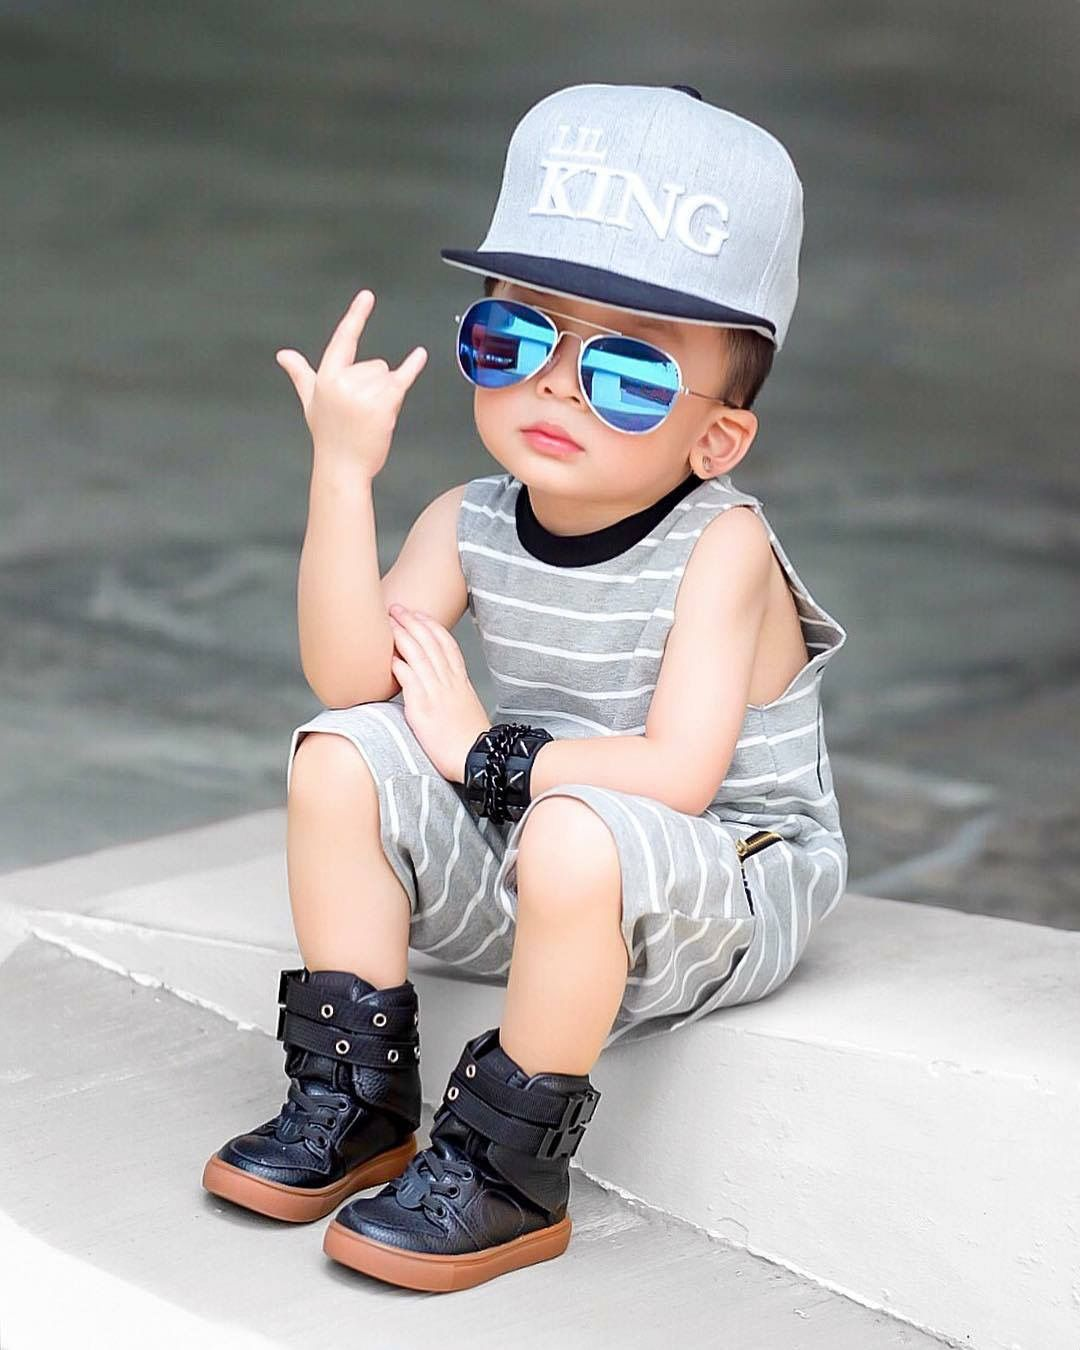 Pin By Rajkumar Singh On Little Kids Style Stylish Little Boys Cute Baby Boy Outfits Cute Baby Boy Images